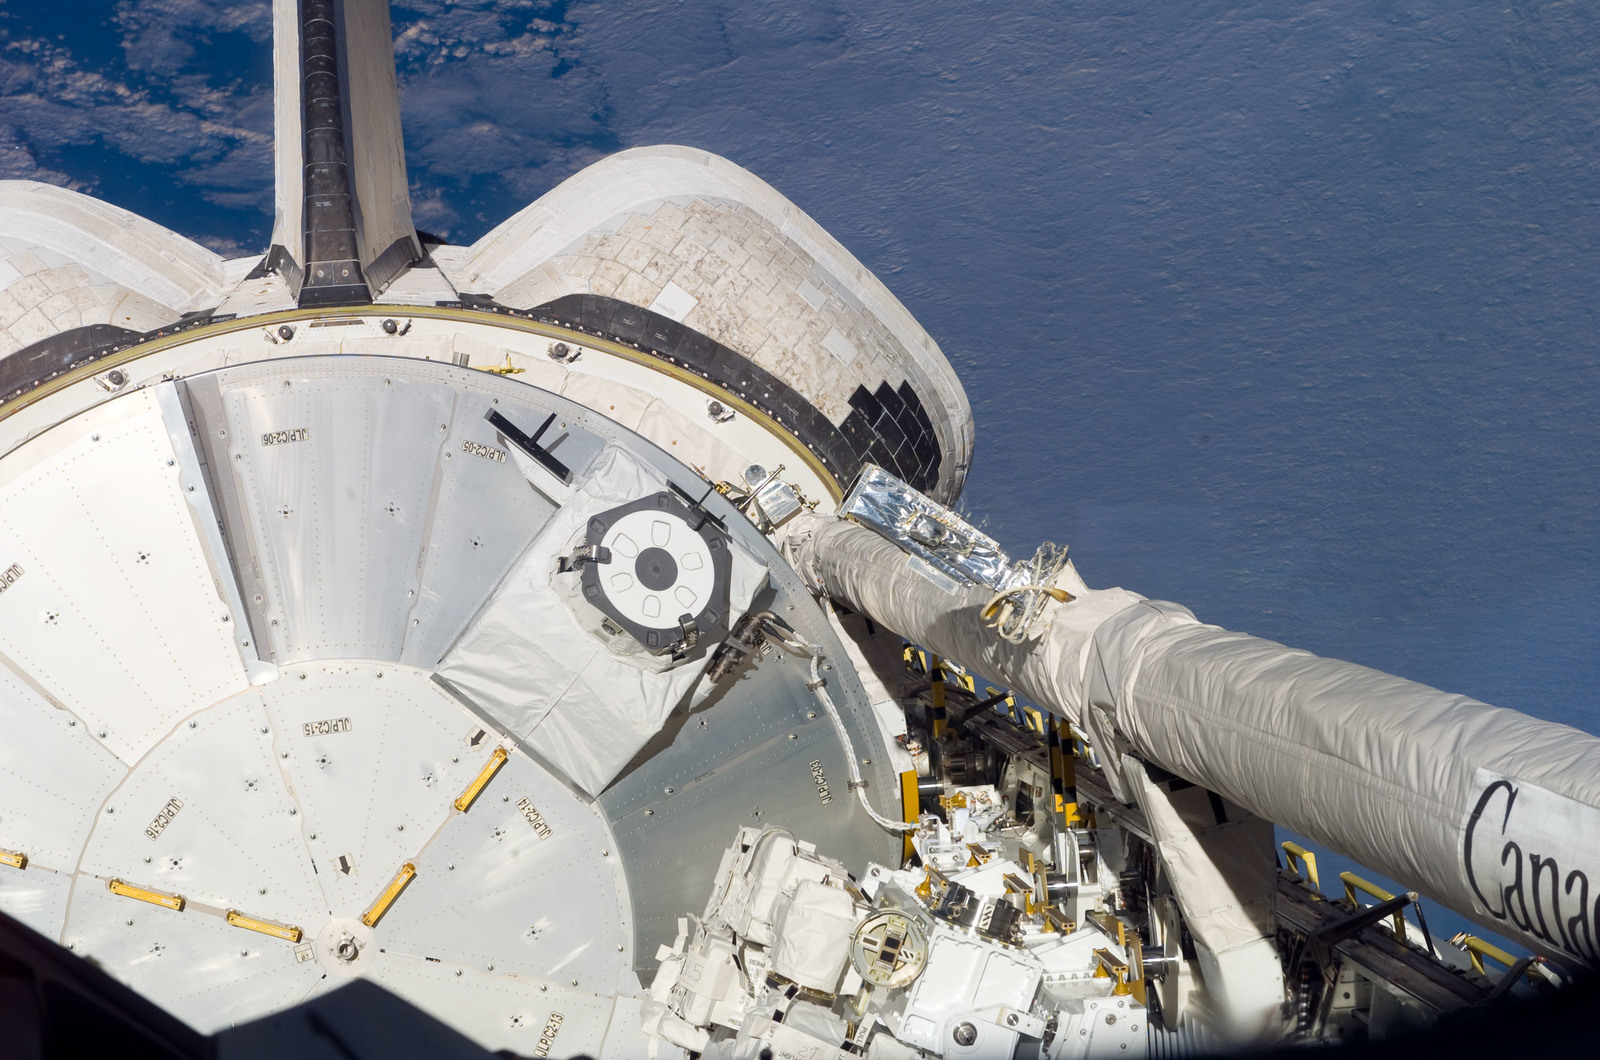 S123E005056 - STS-123 - Space Shuttle Endeavour,OV 105,Payload Bay during STS-123